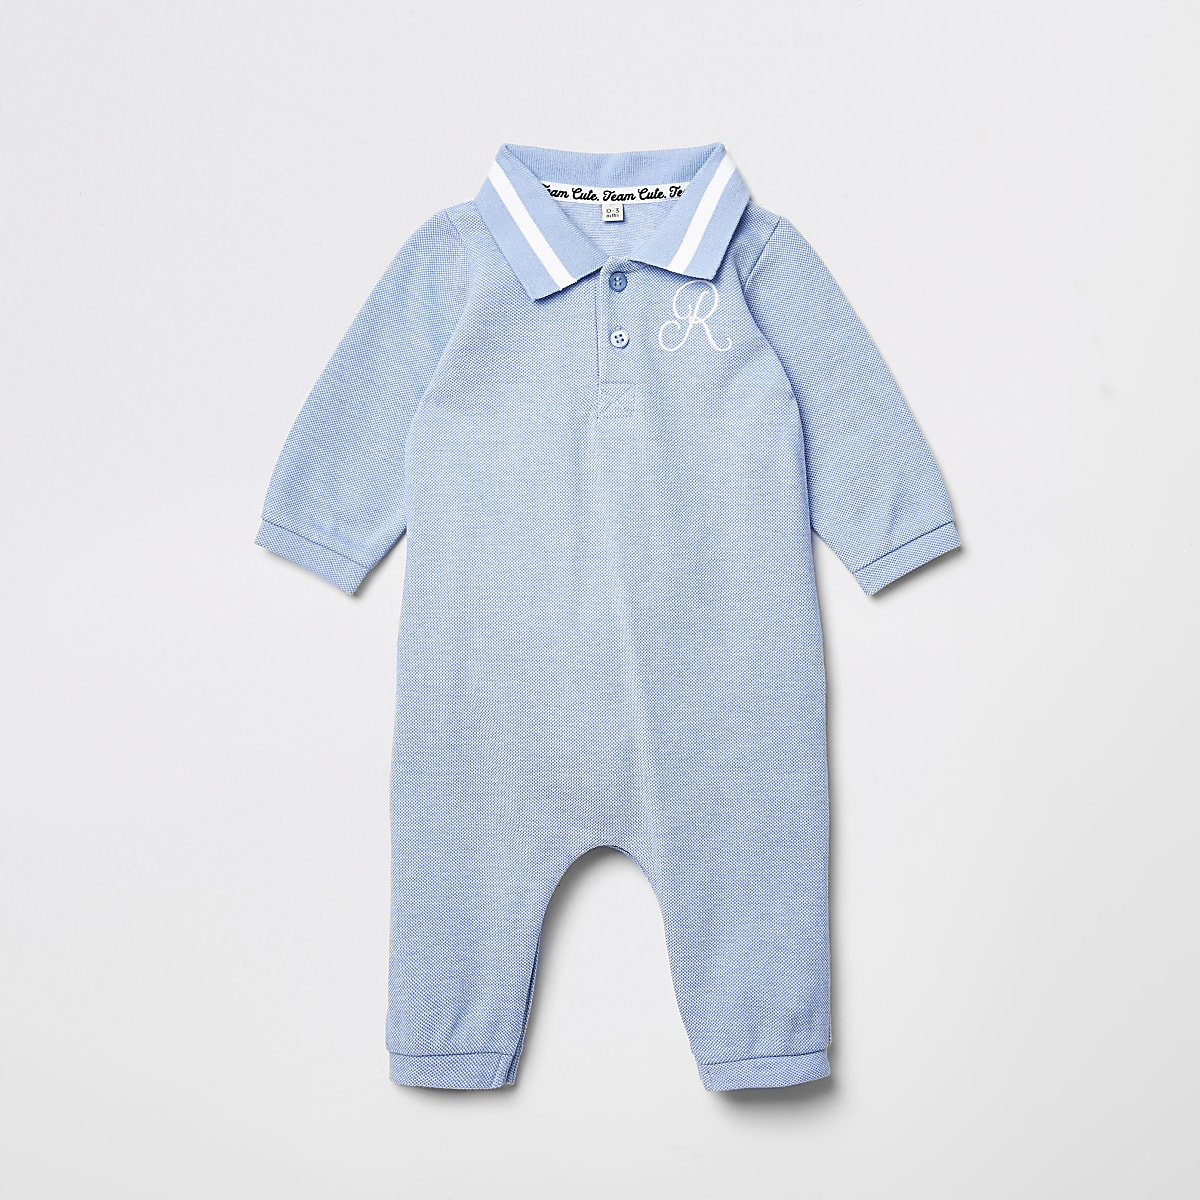 Baby blue R embroidered collar baby grow